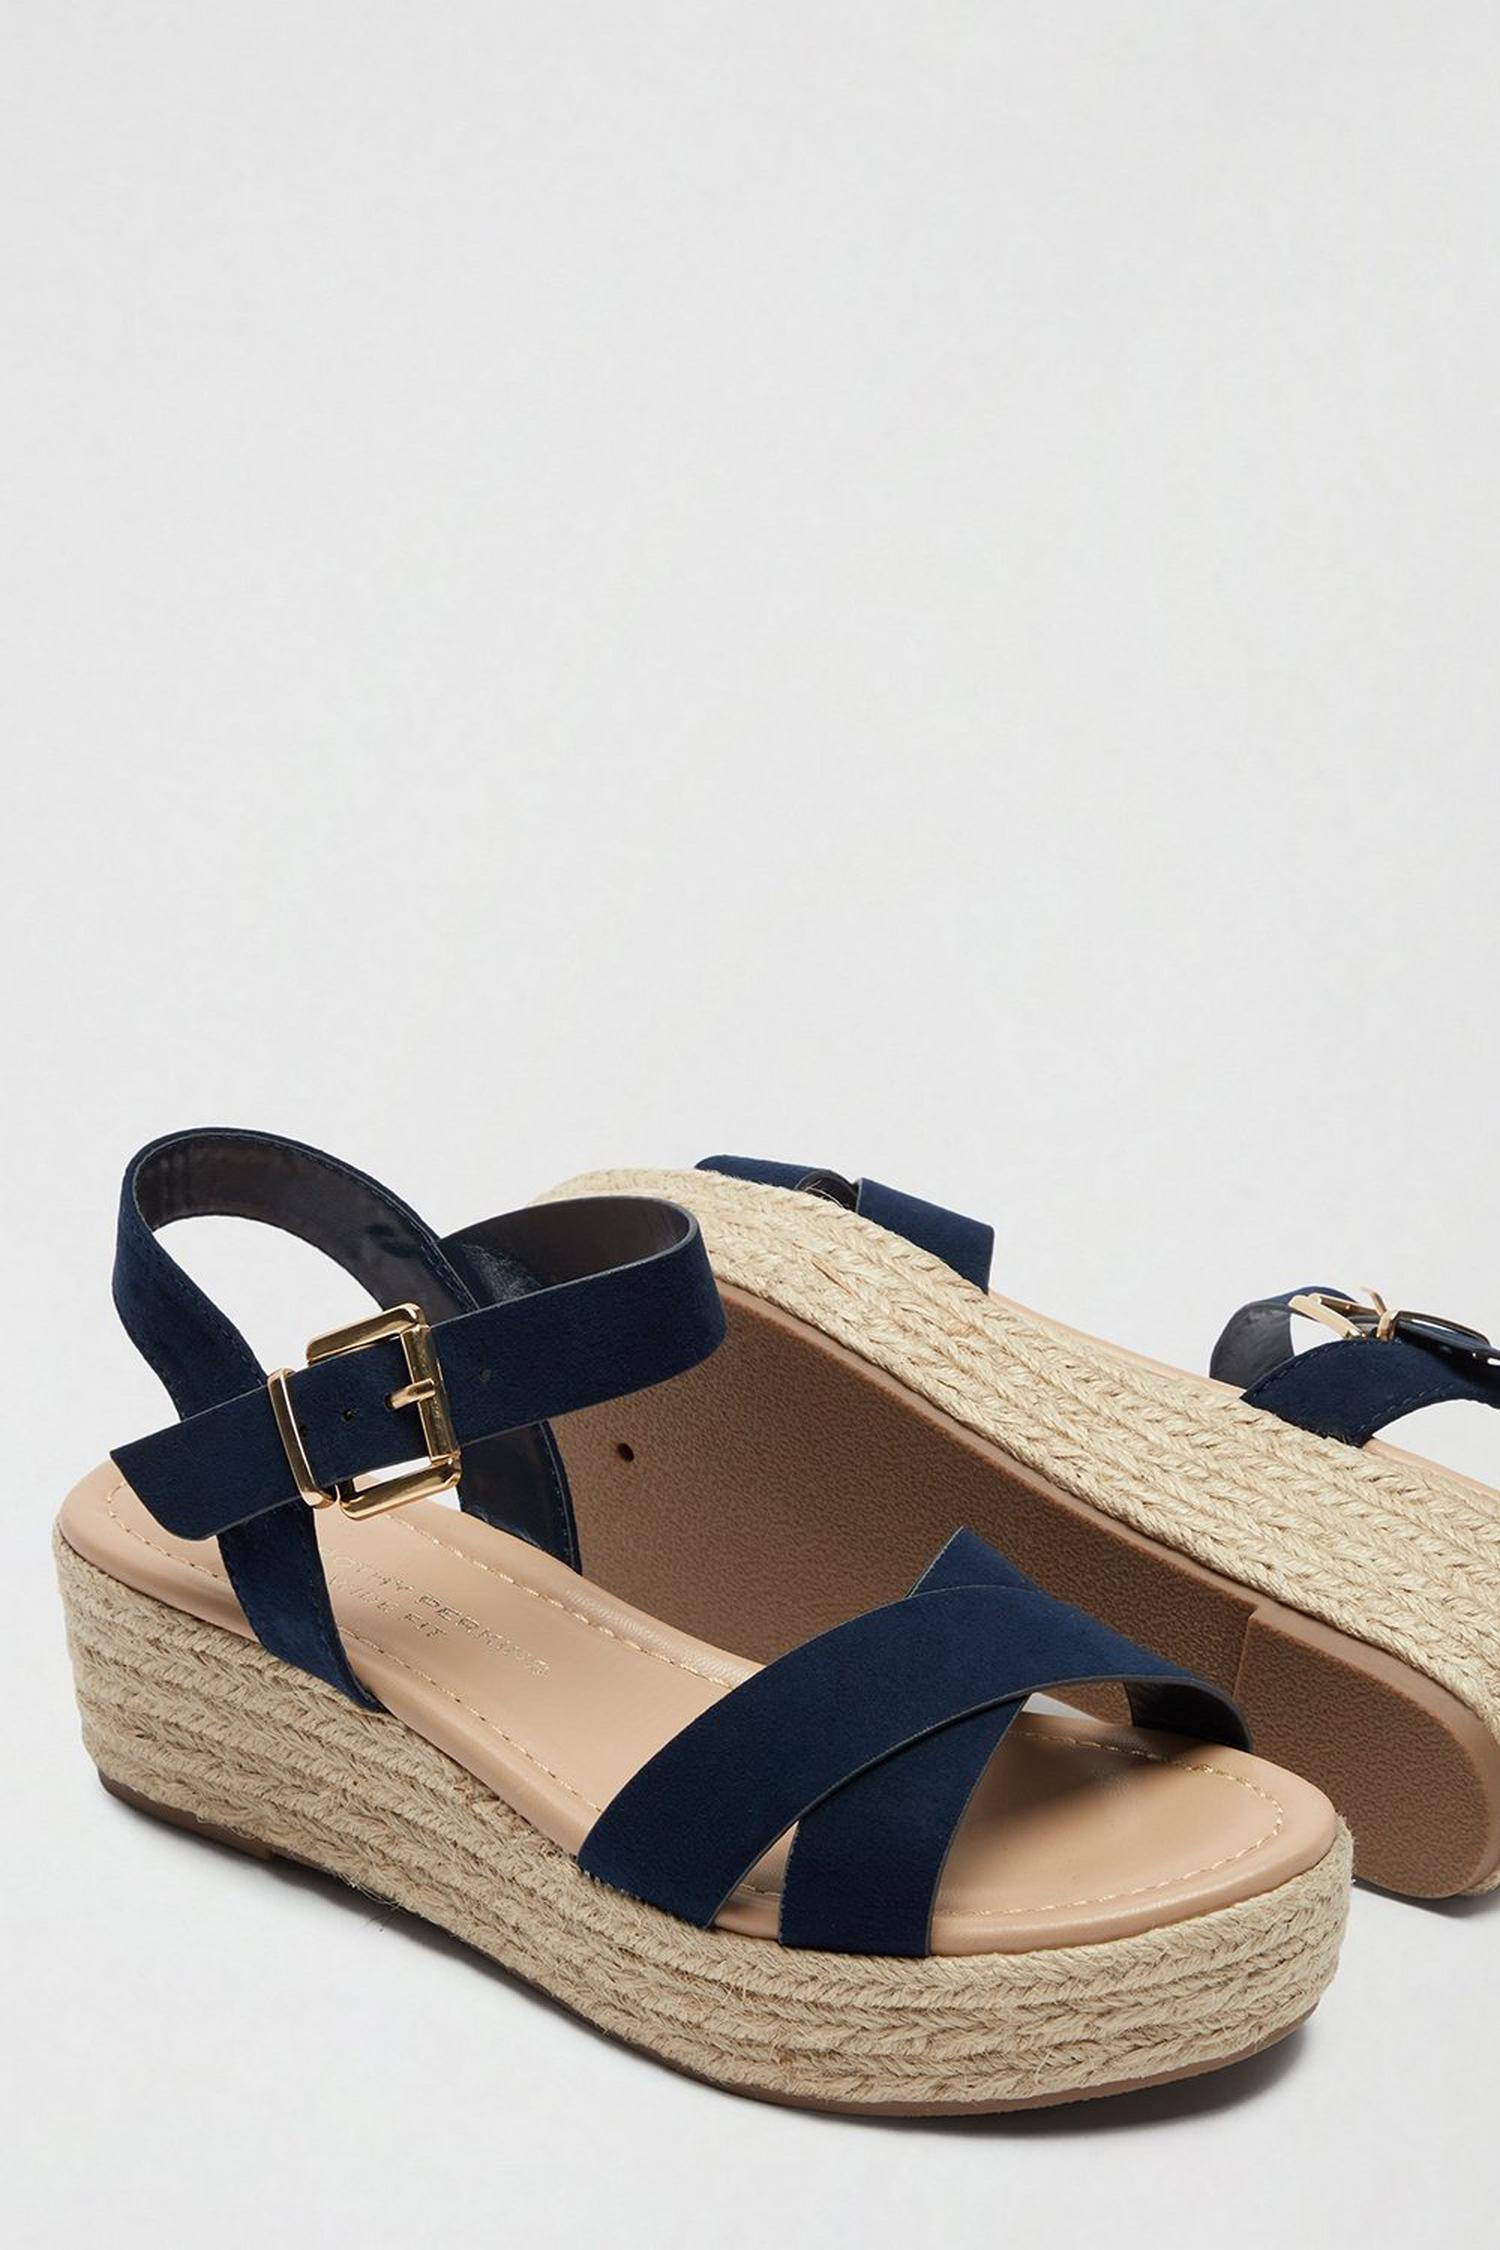 148 Wide Fit Navy Reenie Wedge Sandals image number 4